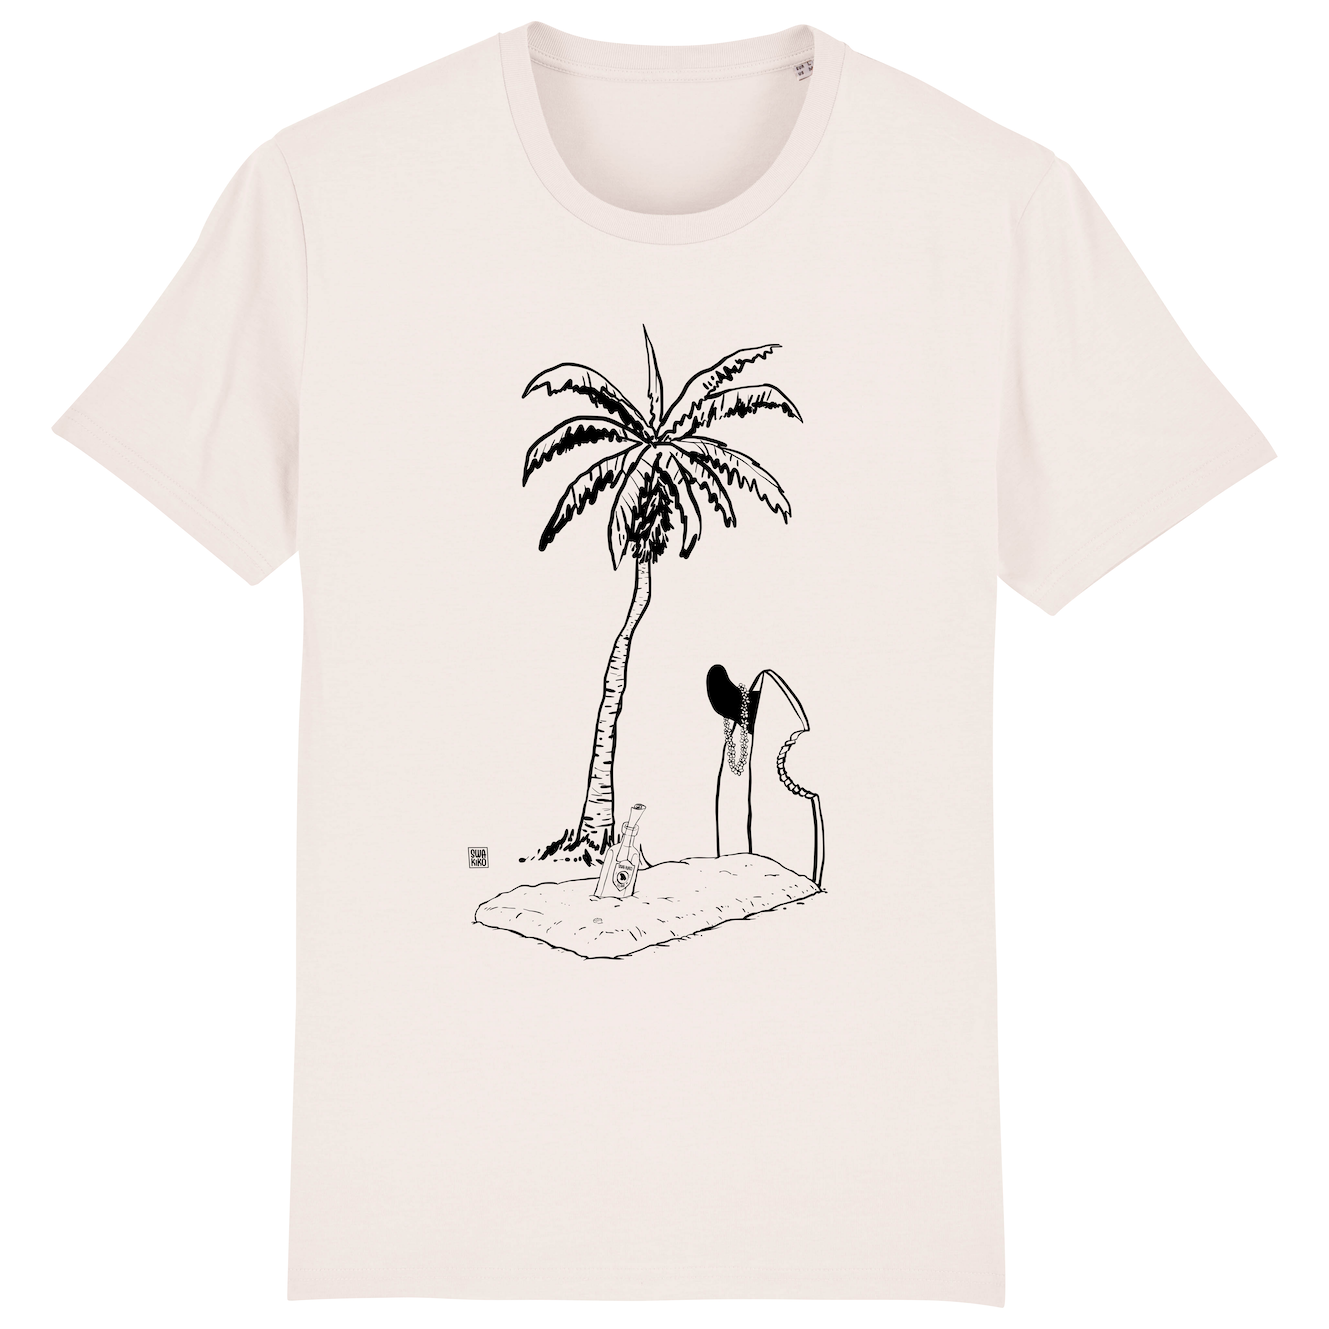 Surf t-shirt men white, Grave with Palmtree